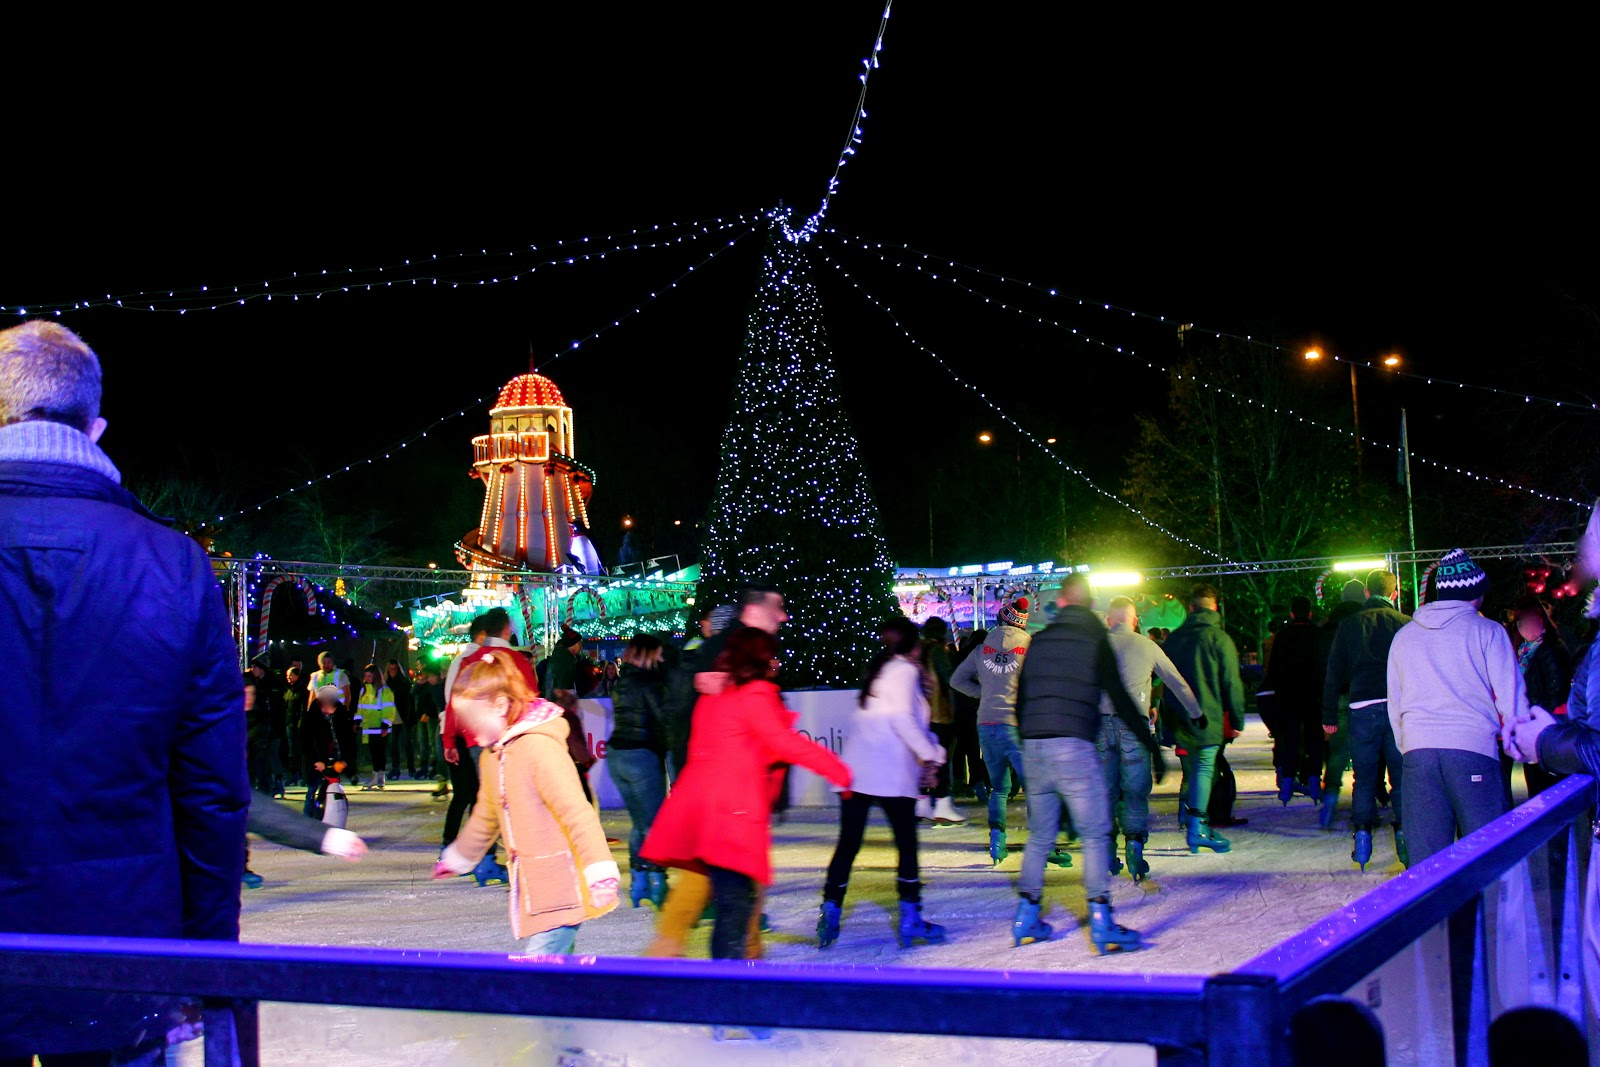 cardiff winter wonderland ice rink